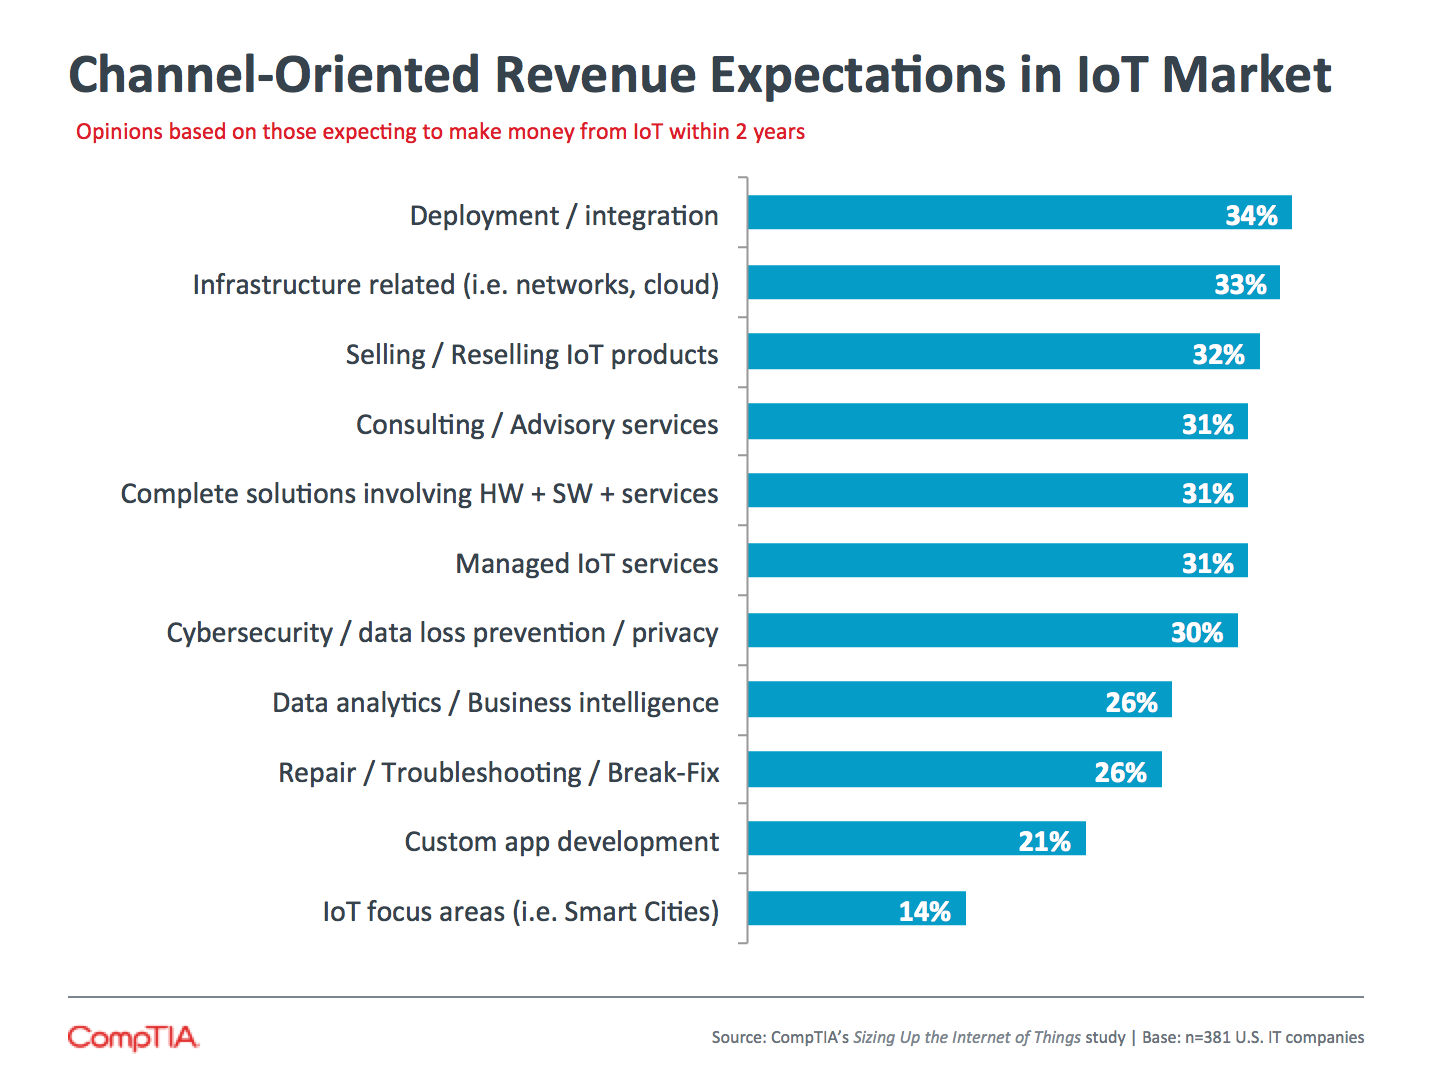 Channel-Oriented Revenue Expectations in IoT Market